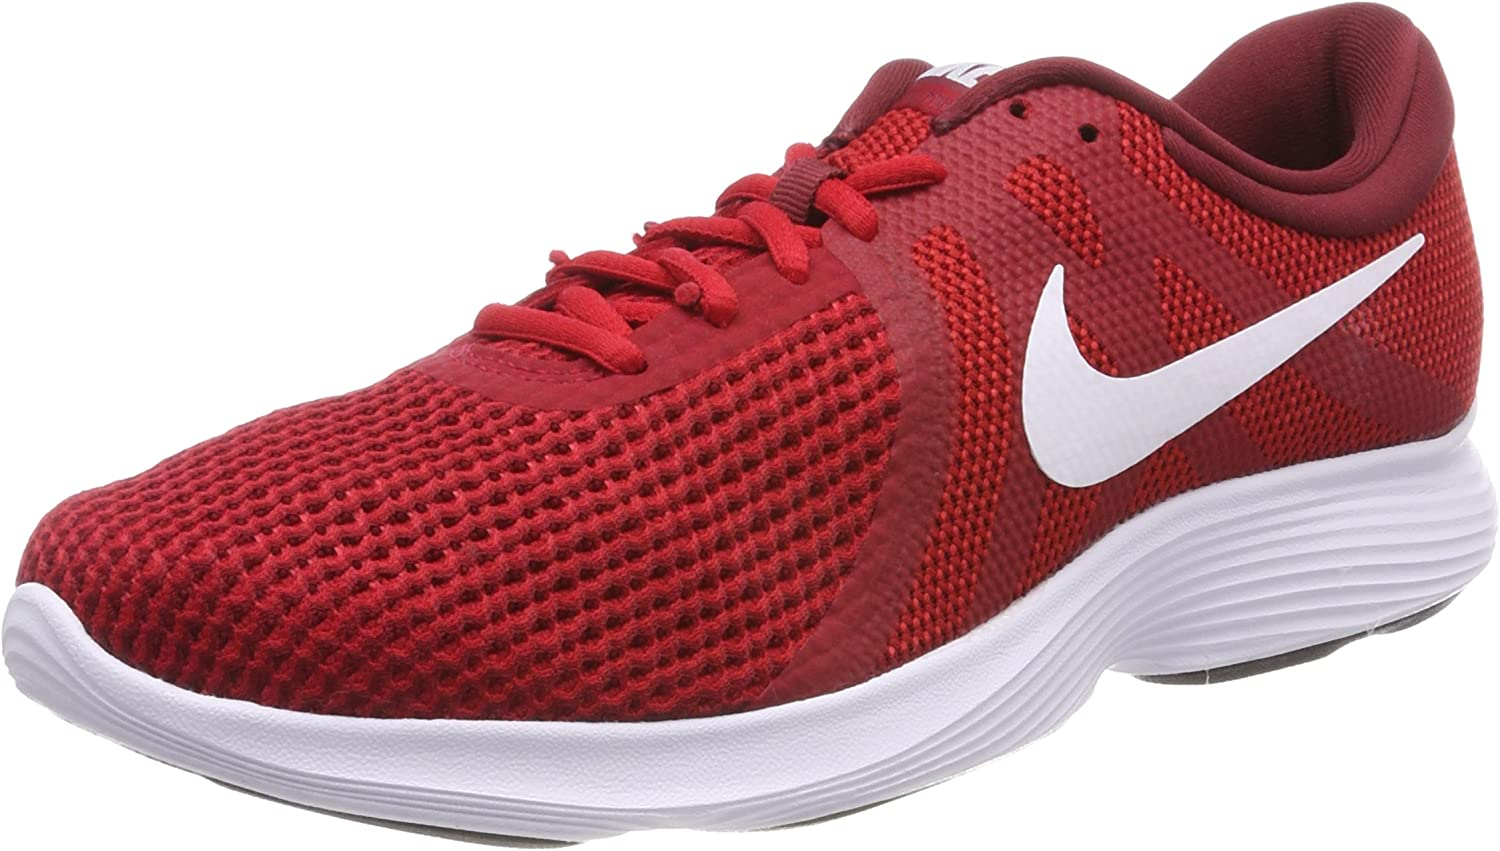 Nike Men's's Revolution 4 EU Competition Running shoes